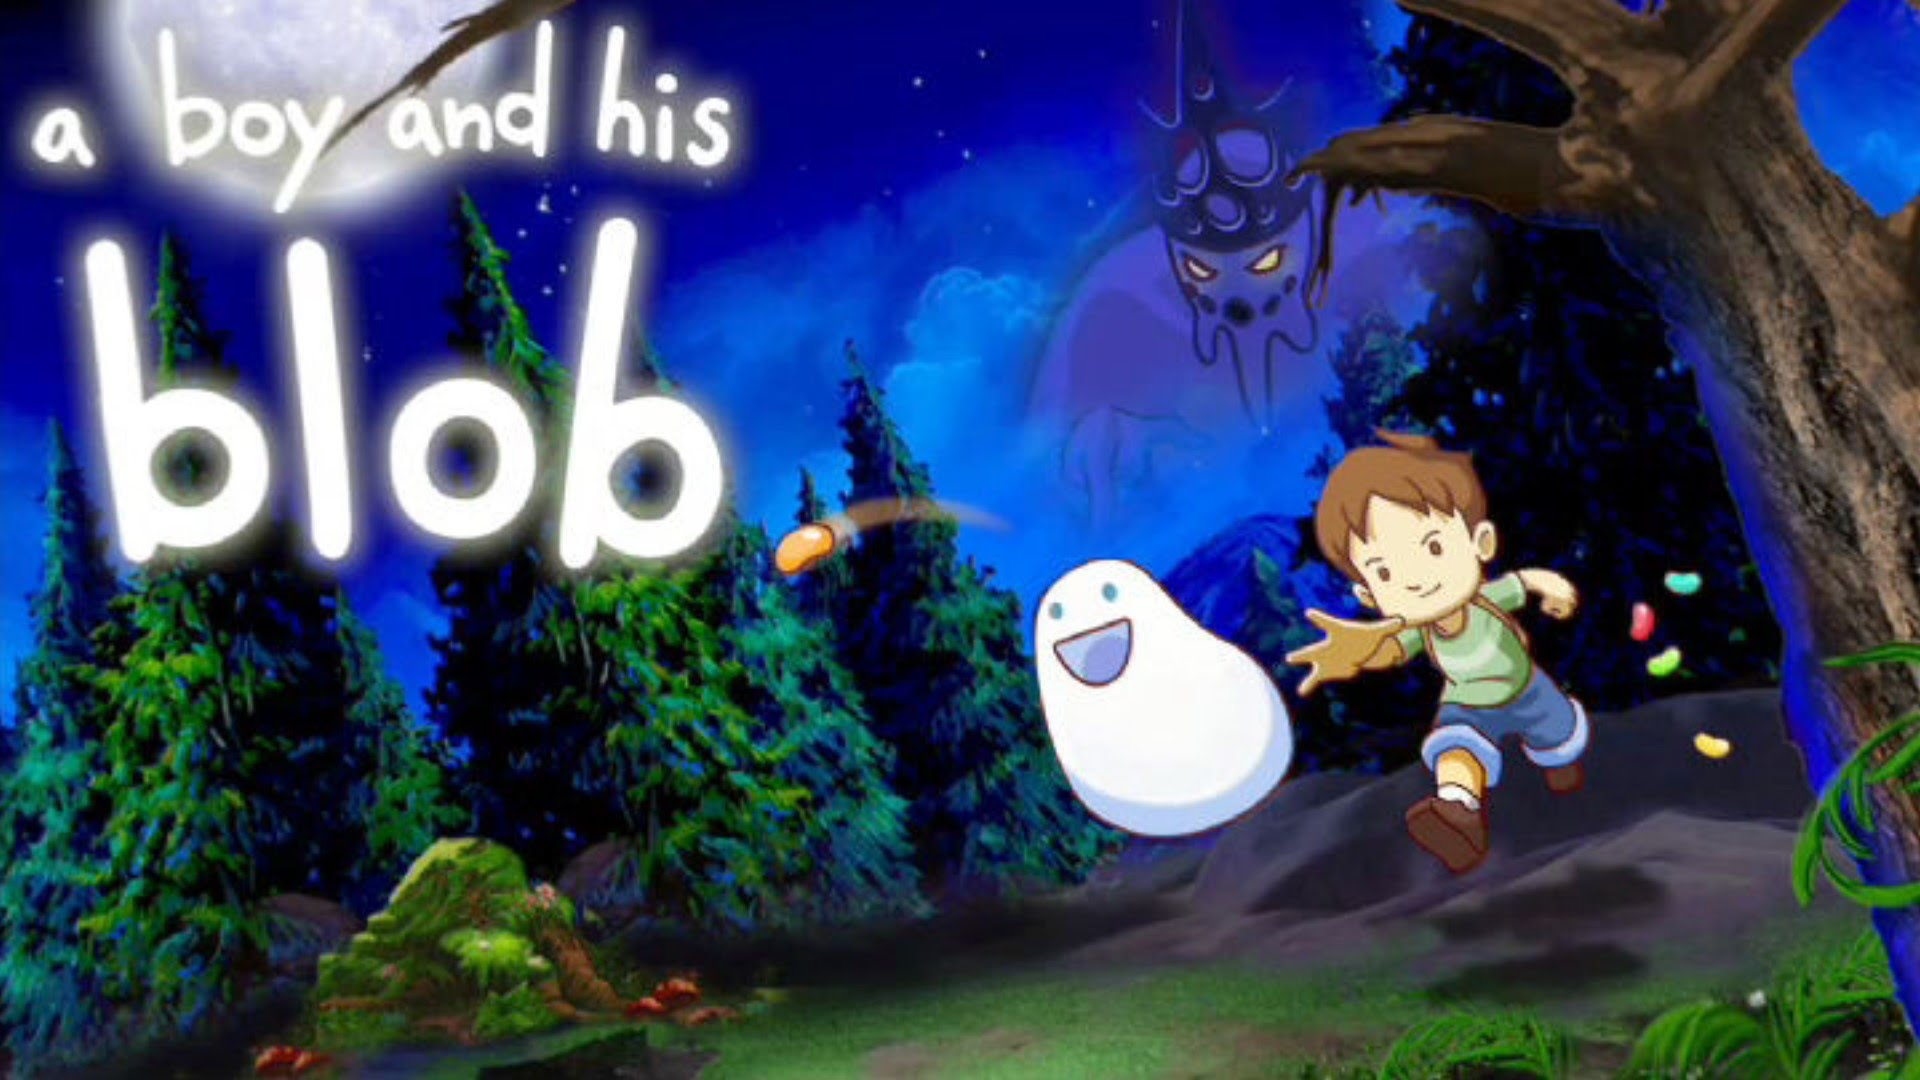 A Boy And His Blob Backgrounds, Compatible - PC, Mobile, Gadgets| 1920x1080 px